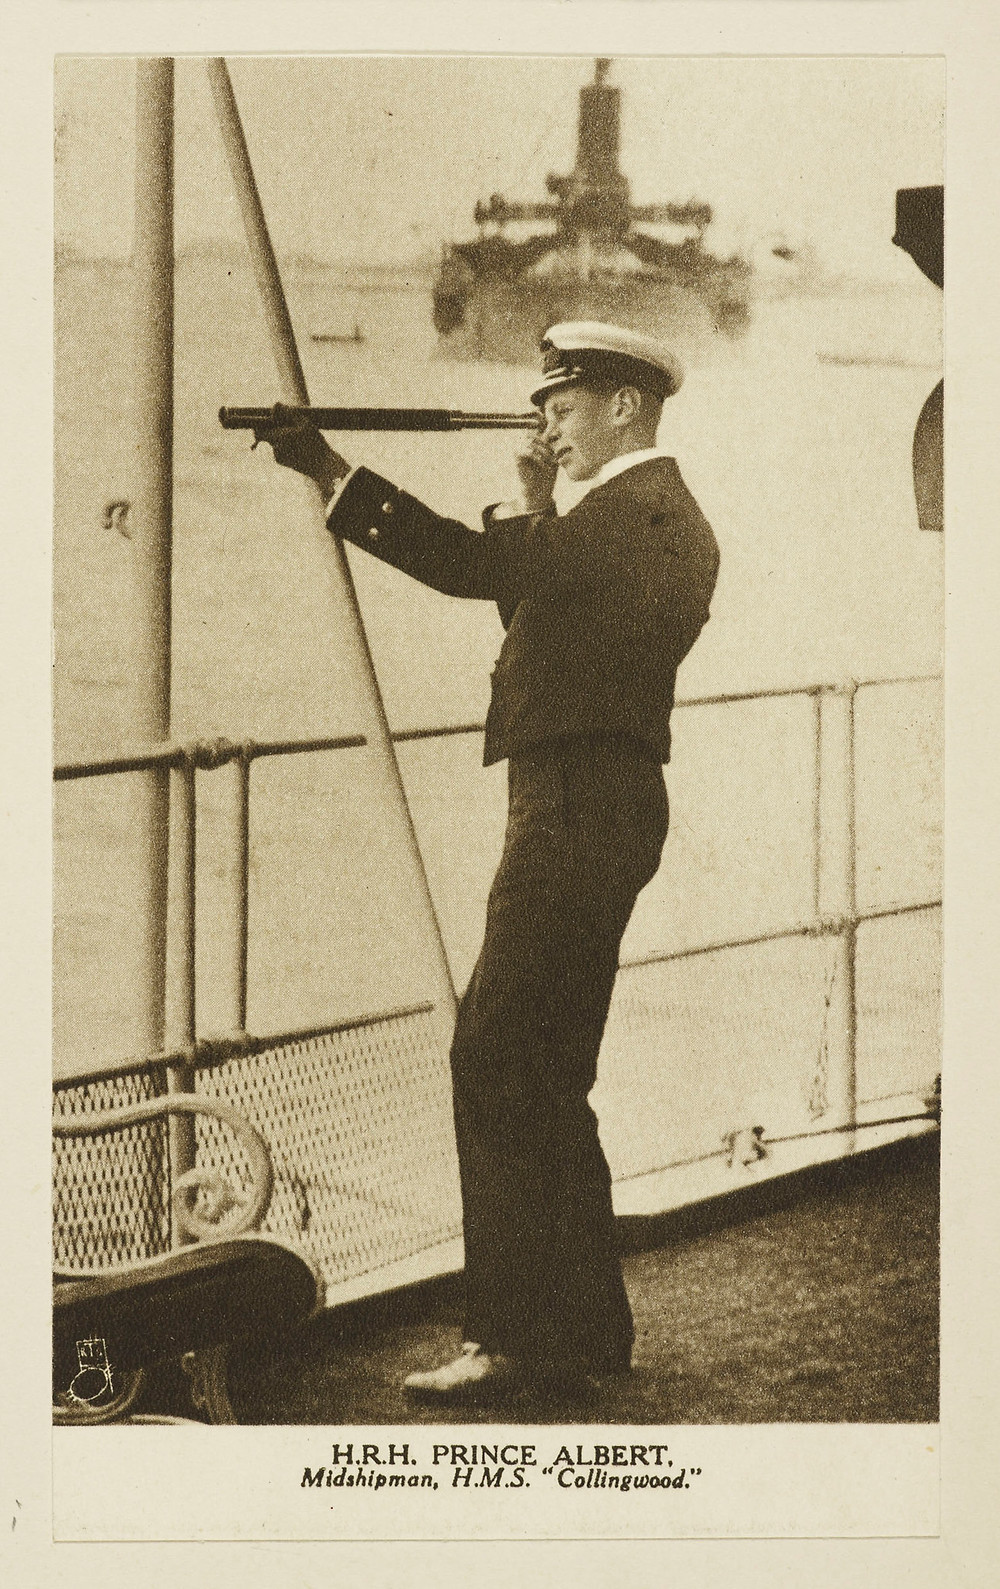 King George VI (1895-1952), when Prince Albert on-board HMS Collingwood c. 1915